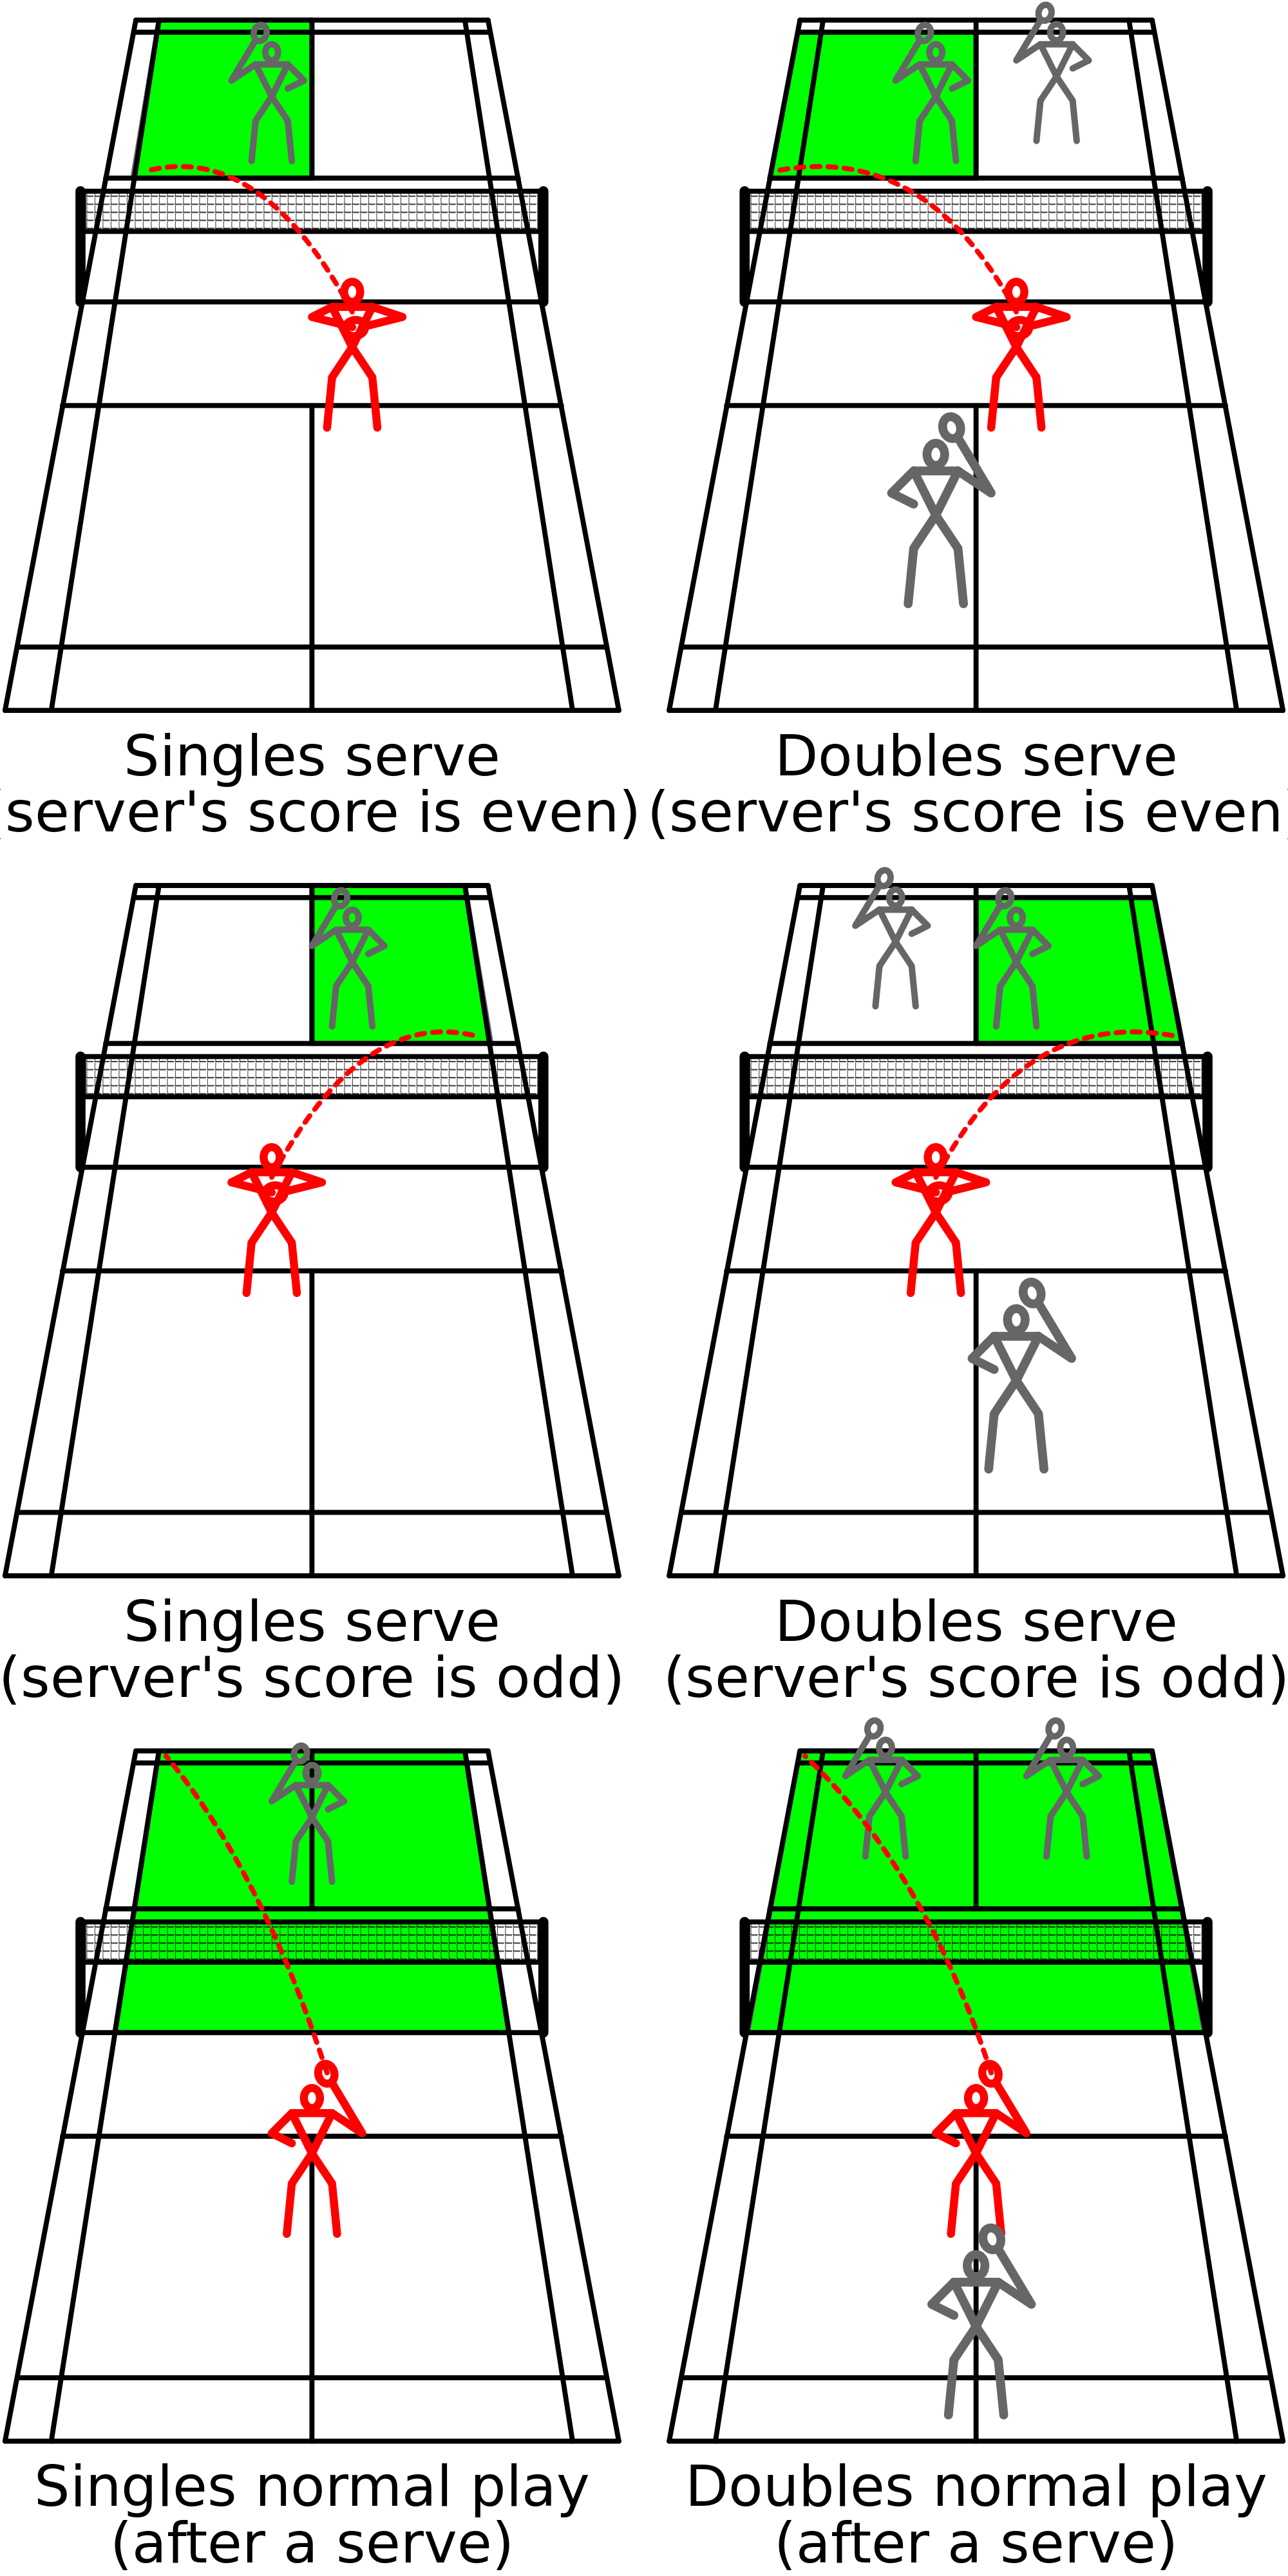 racquetball court diagram 3 phase ac wiring the legal bounds of a badminton during various